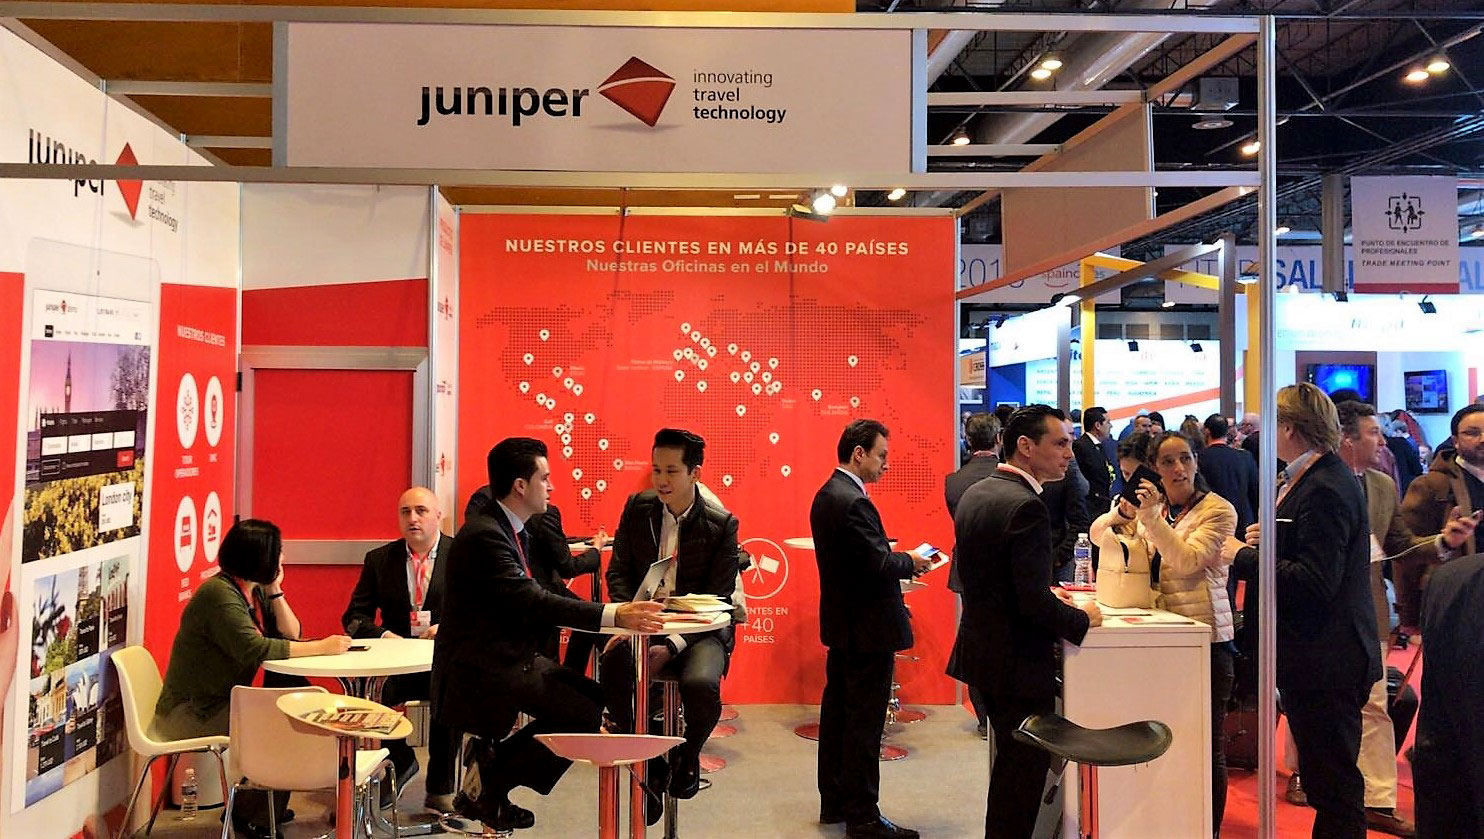 Juniper at FITUR 2018, world tourism showcase